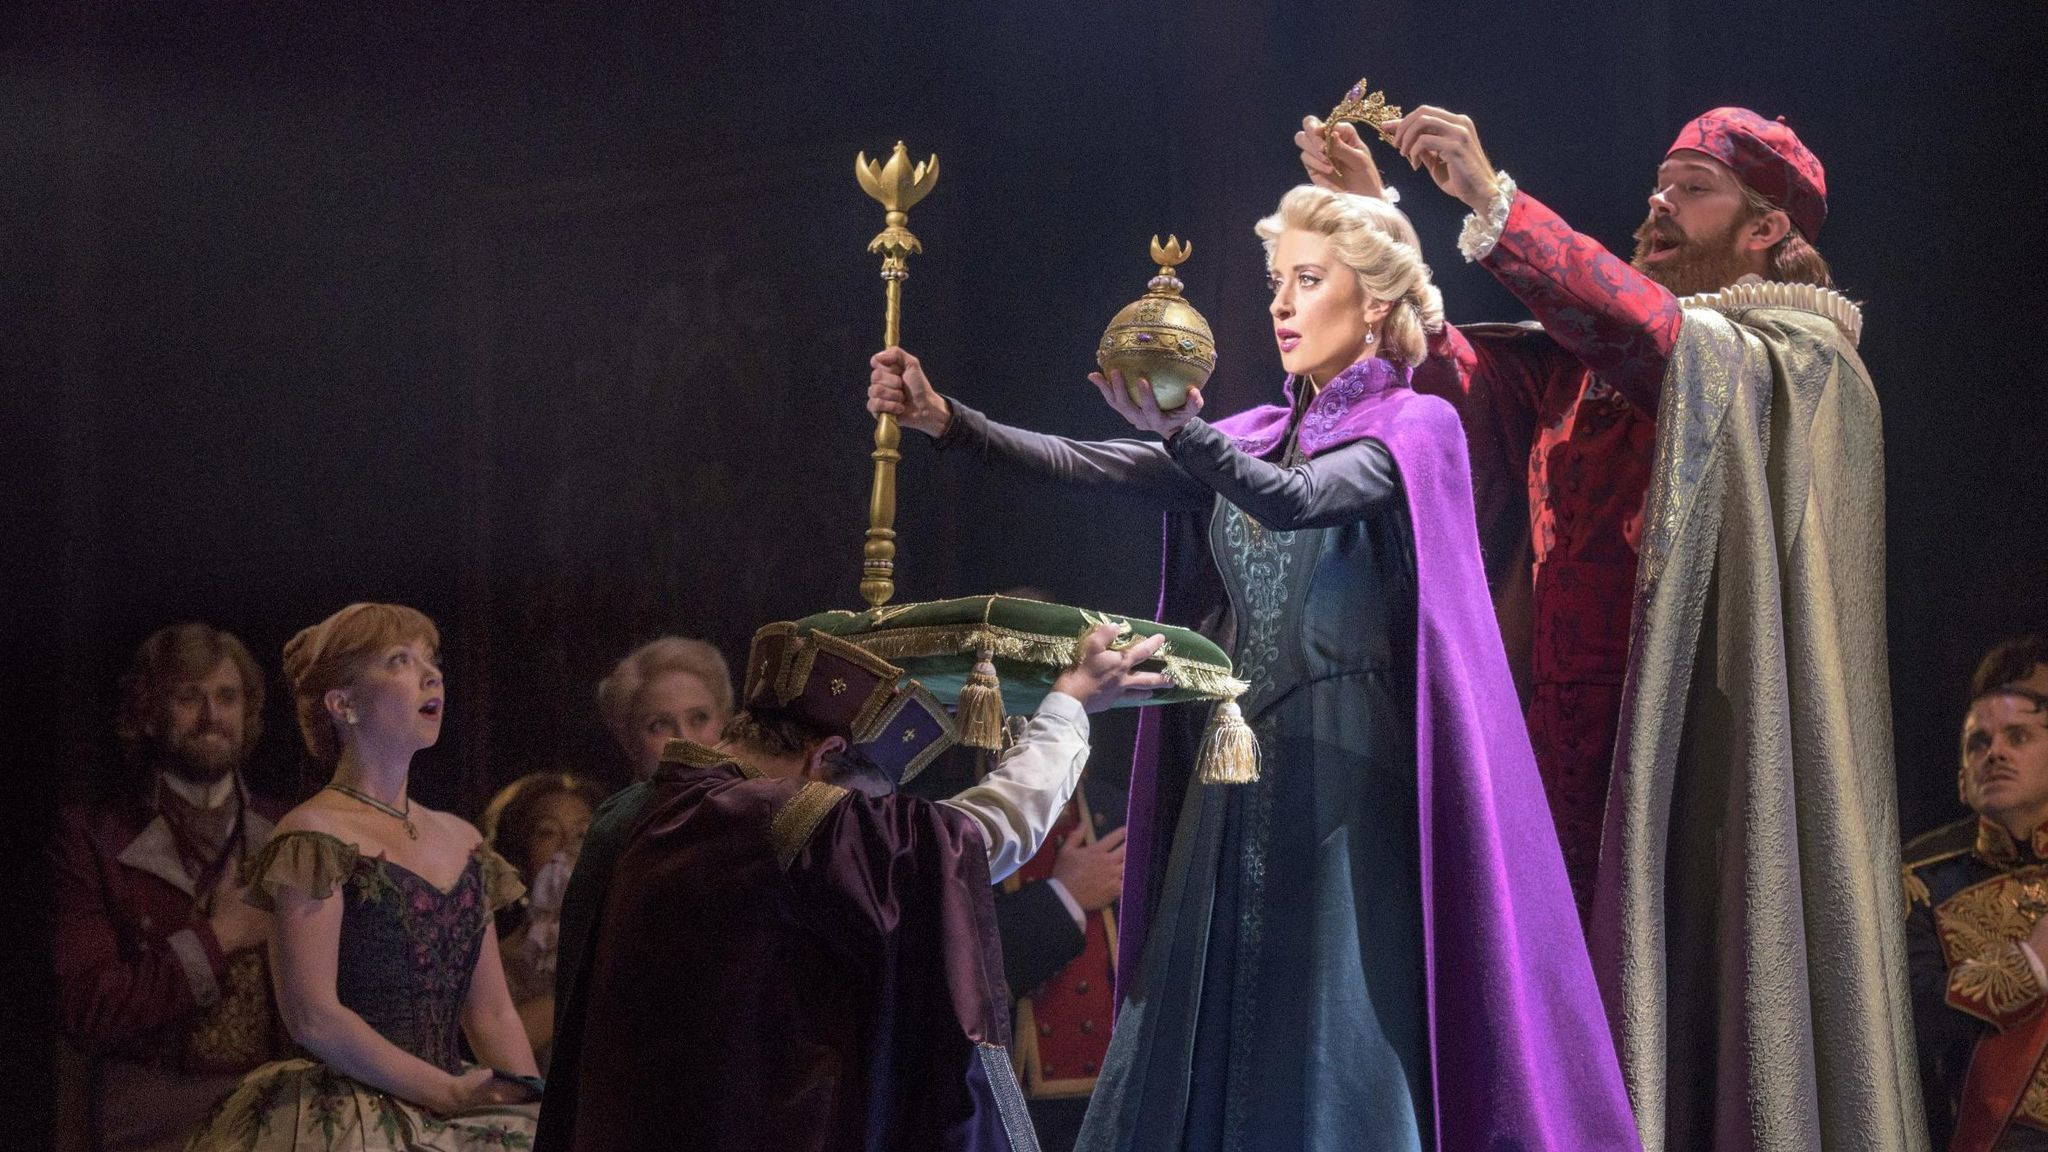 In Denver Disney S Frozen Musical Plays It Too Safe With Elsa And Anna Chicago Tribune